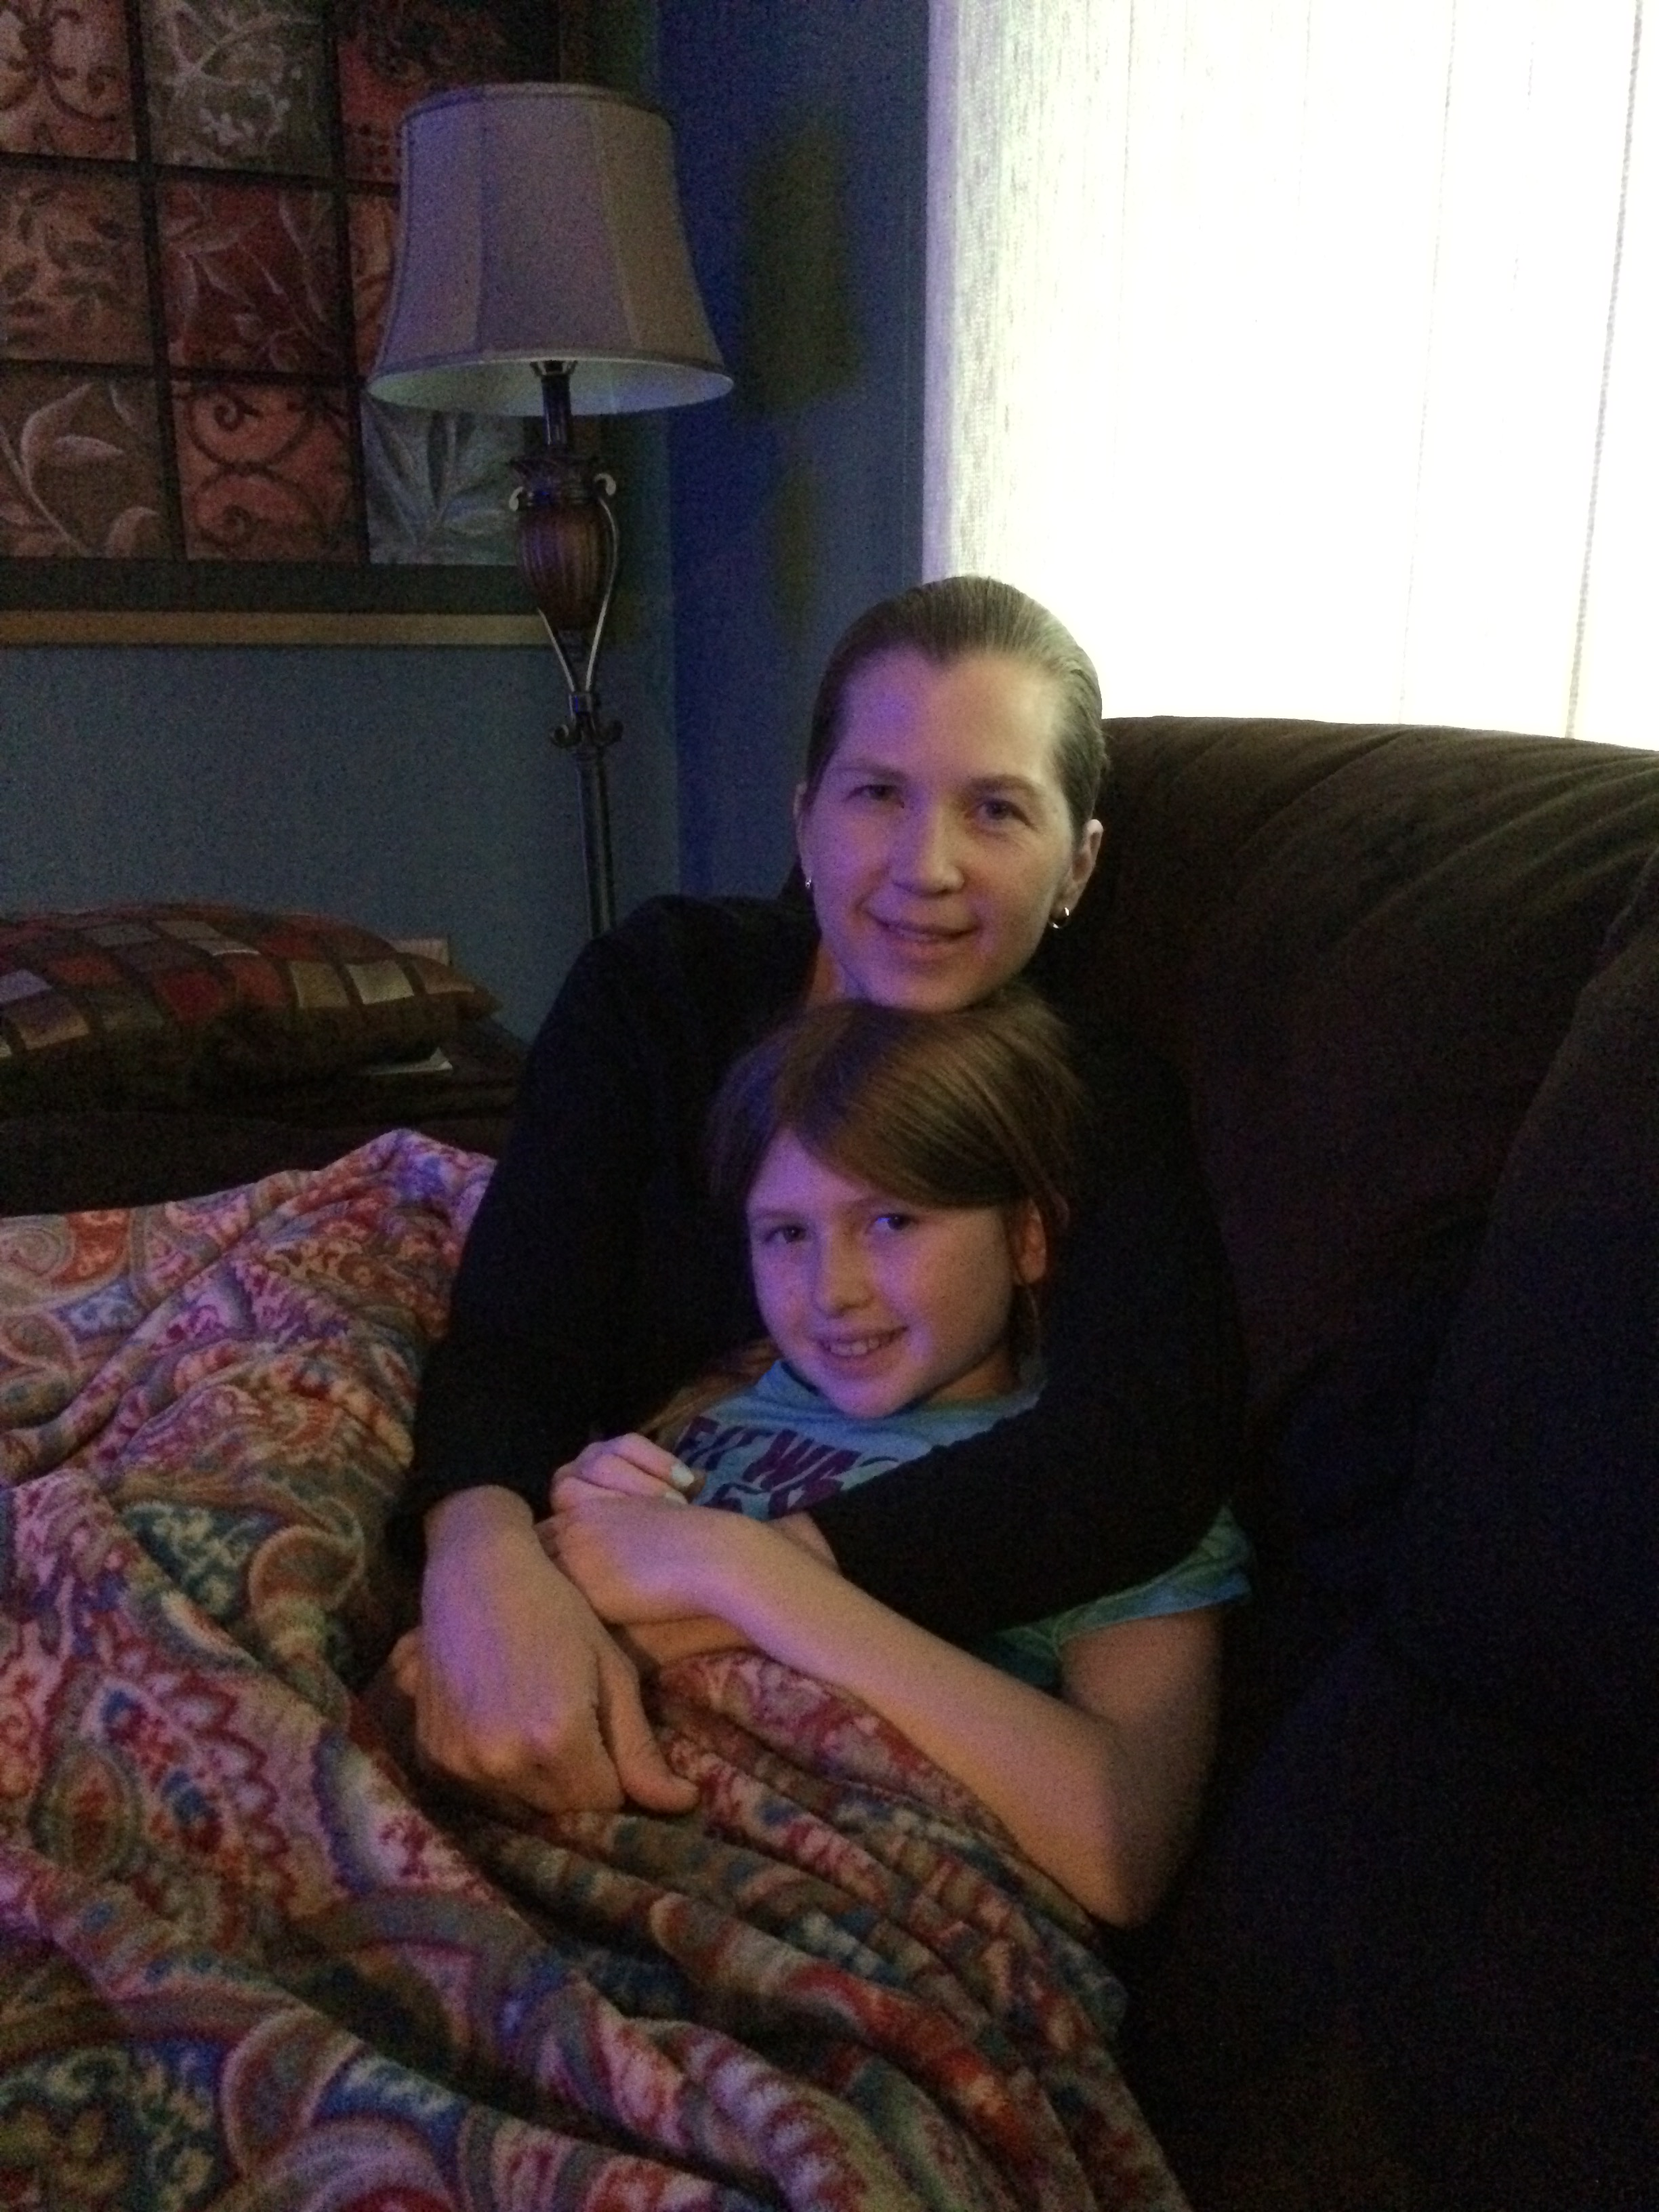 Cuddling on the couch with my favorite patient. Mommy hugs are an integral part of the healing process.